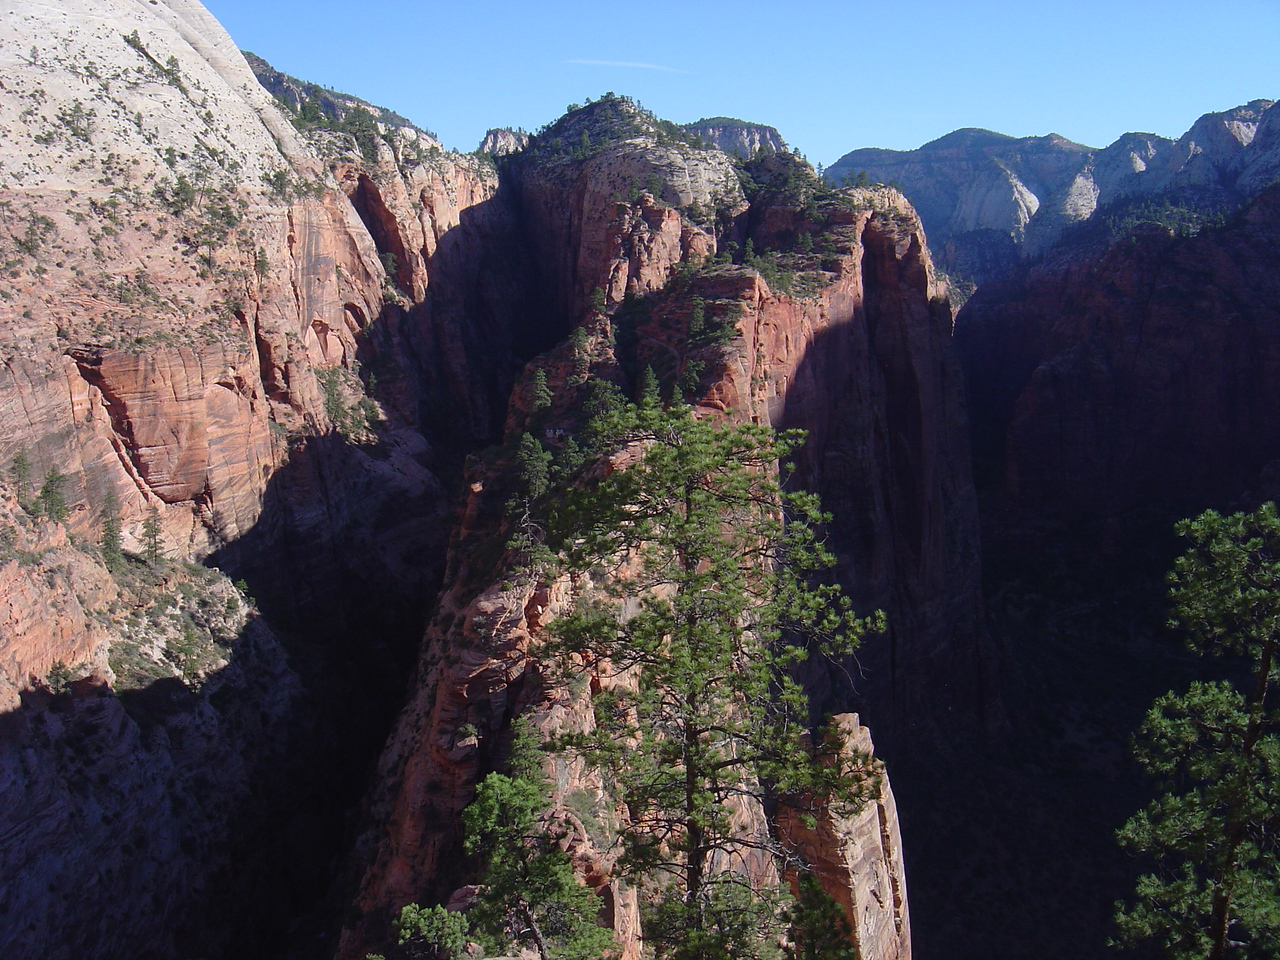 angels landing within sight